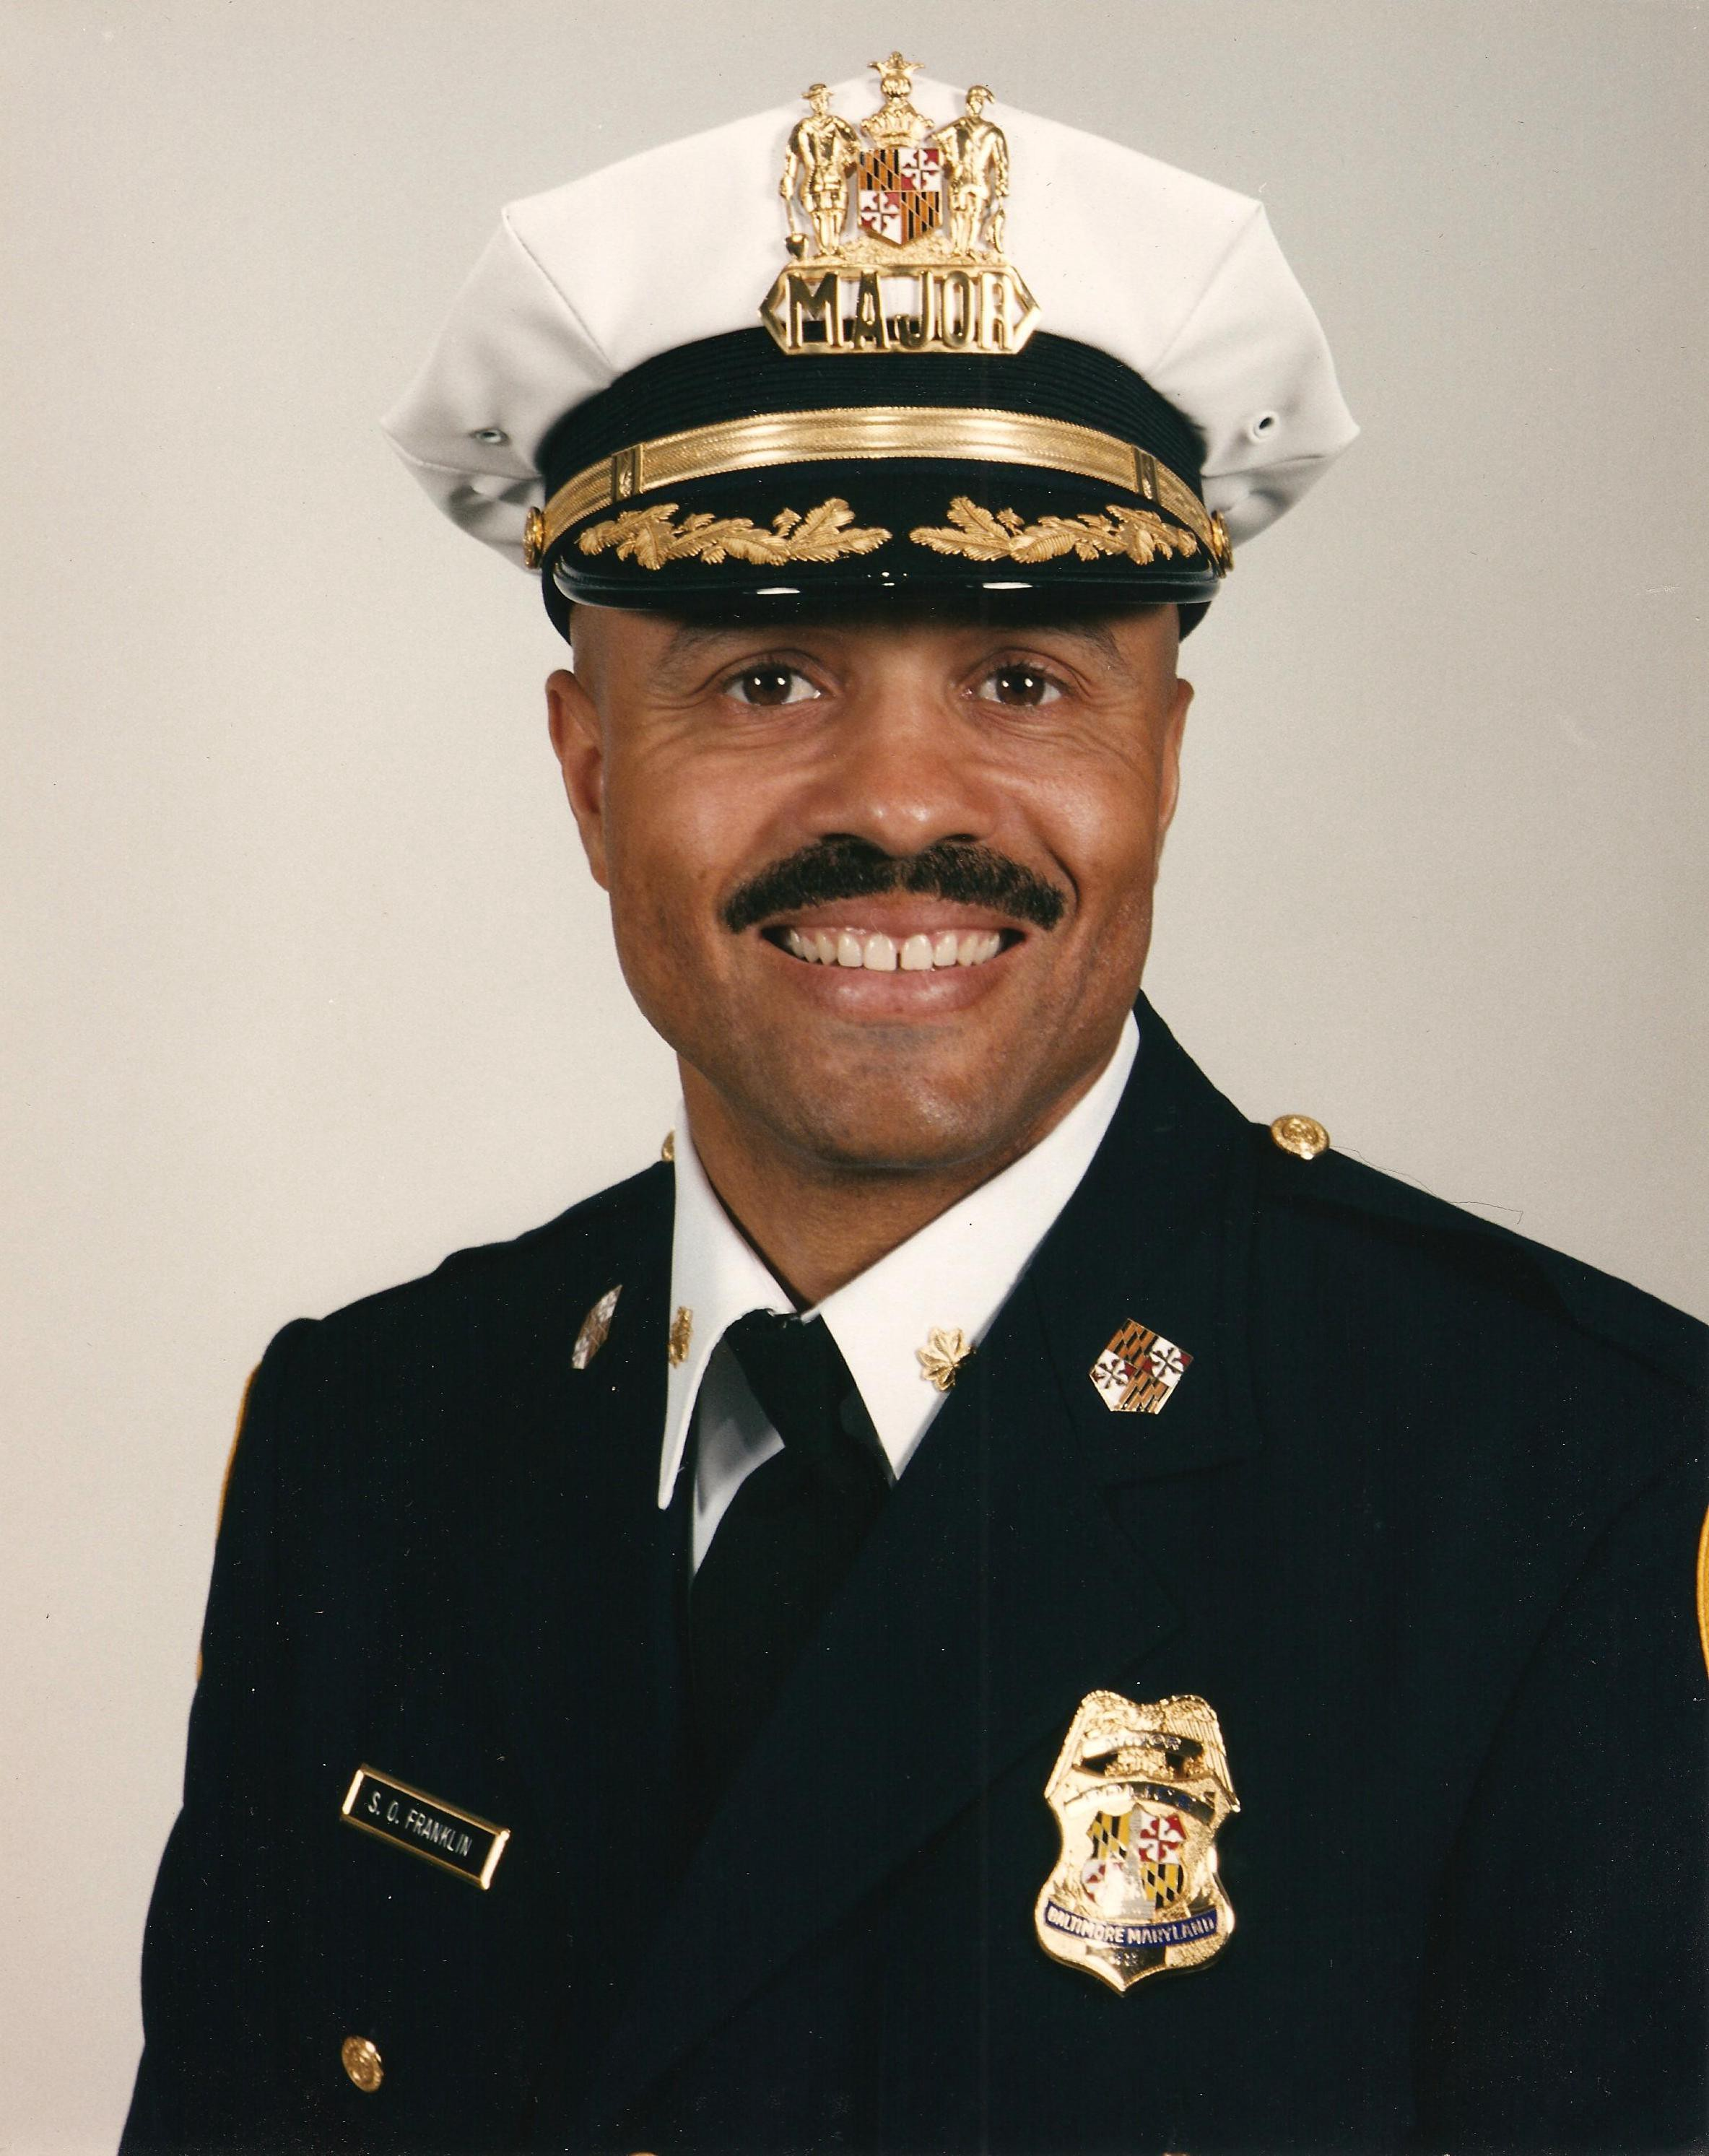 A formal headshot of a Major Franklin in a police uniform.